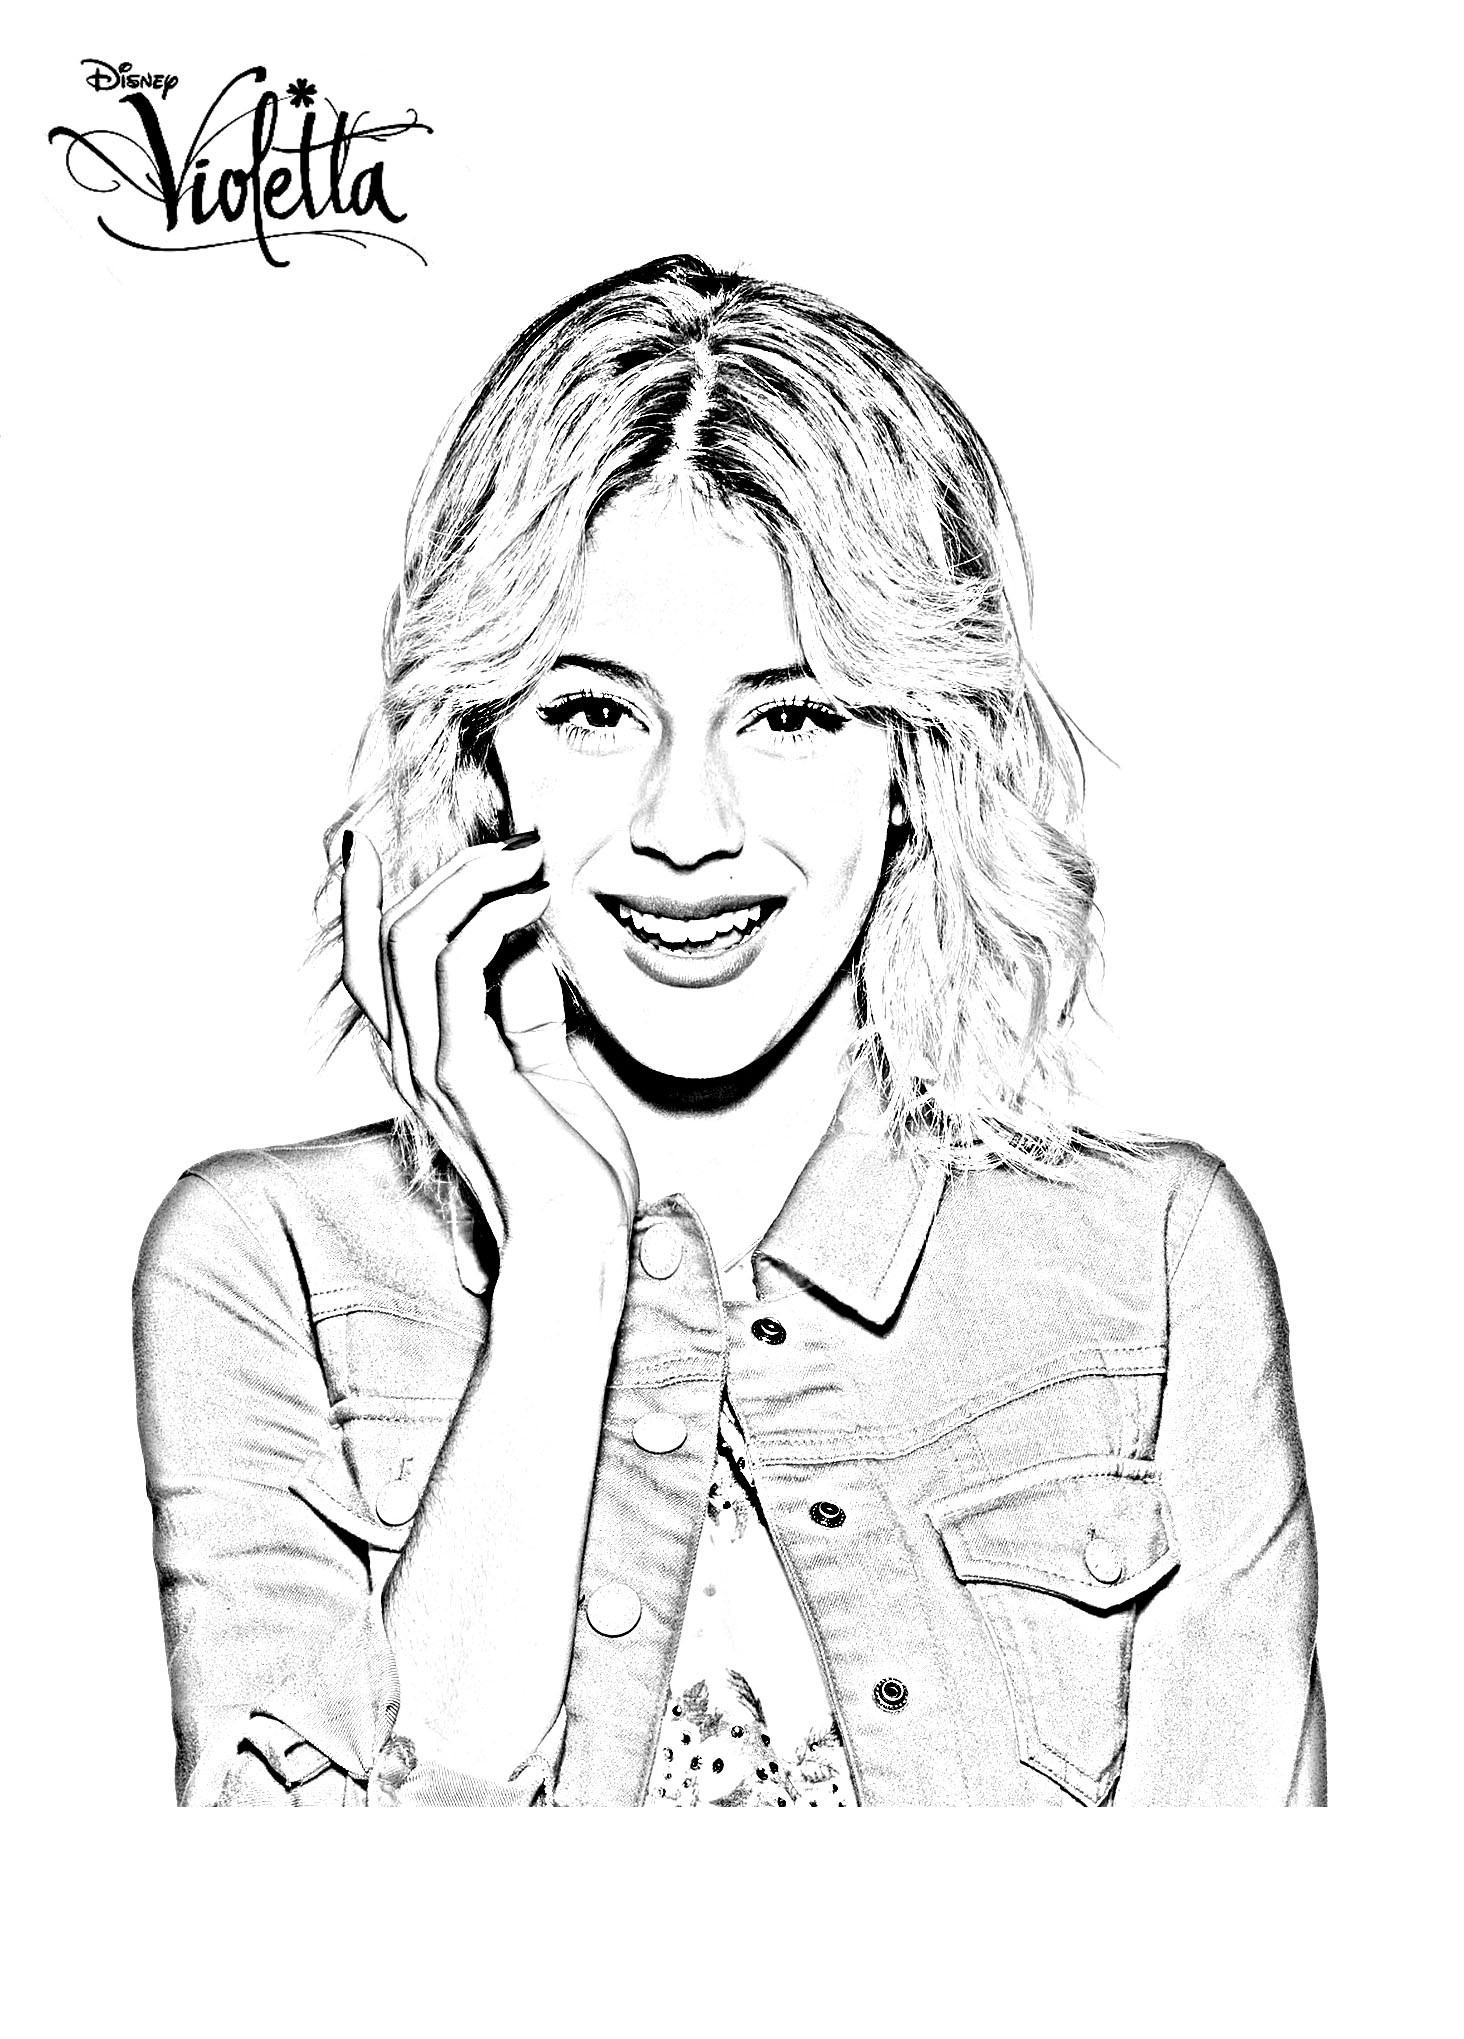 violetta coloring pages - photo#33